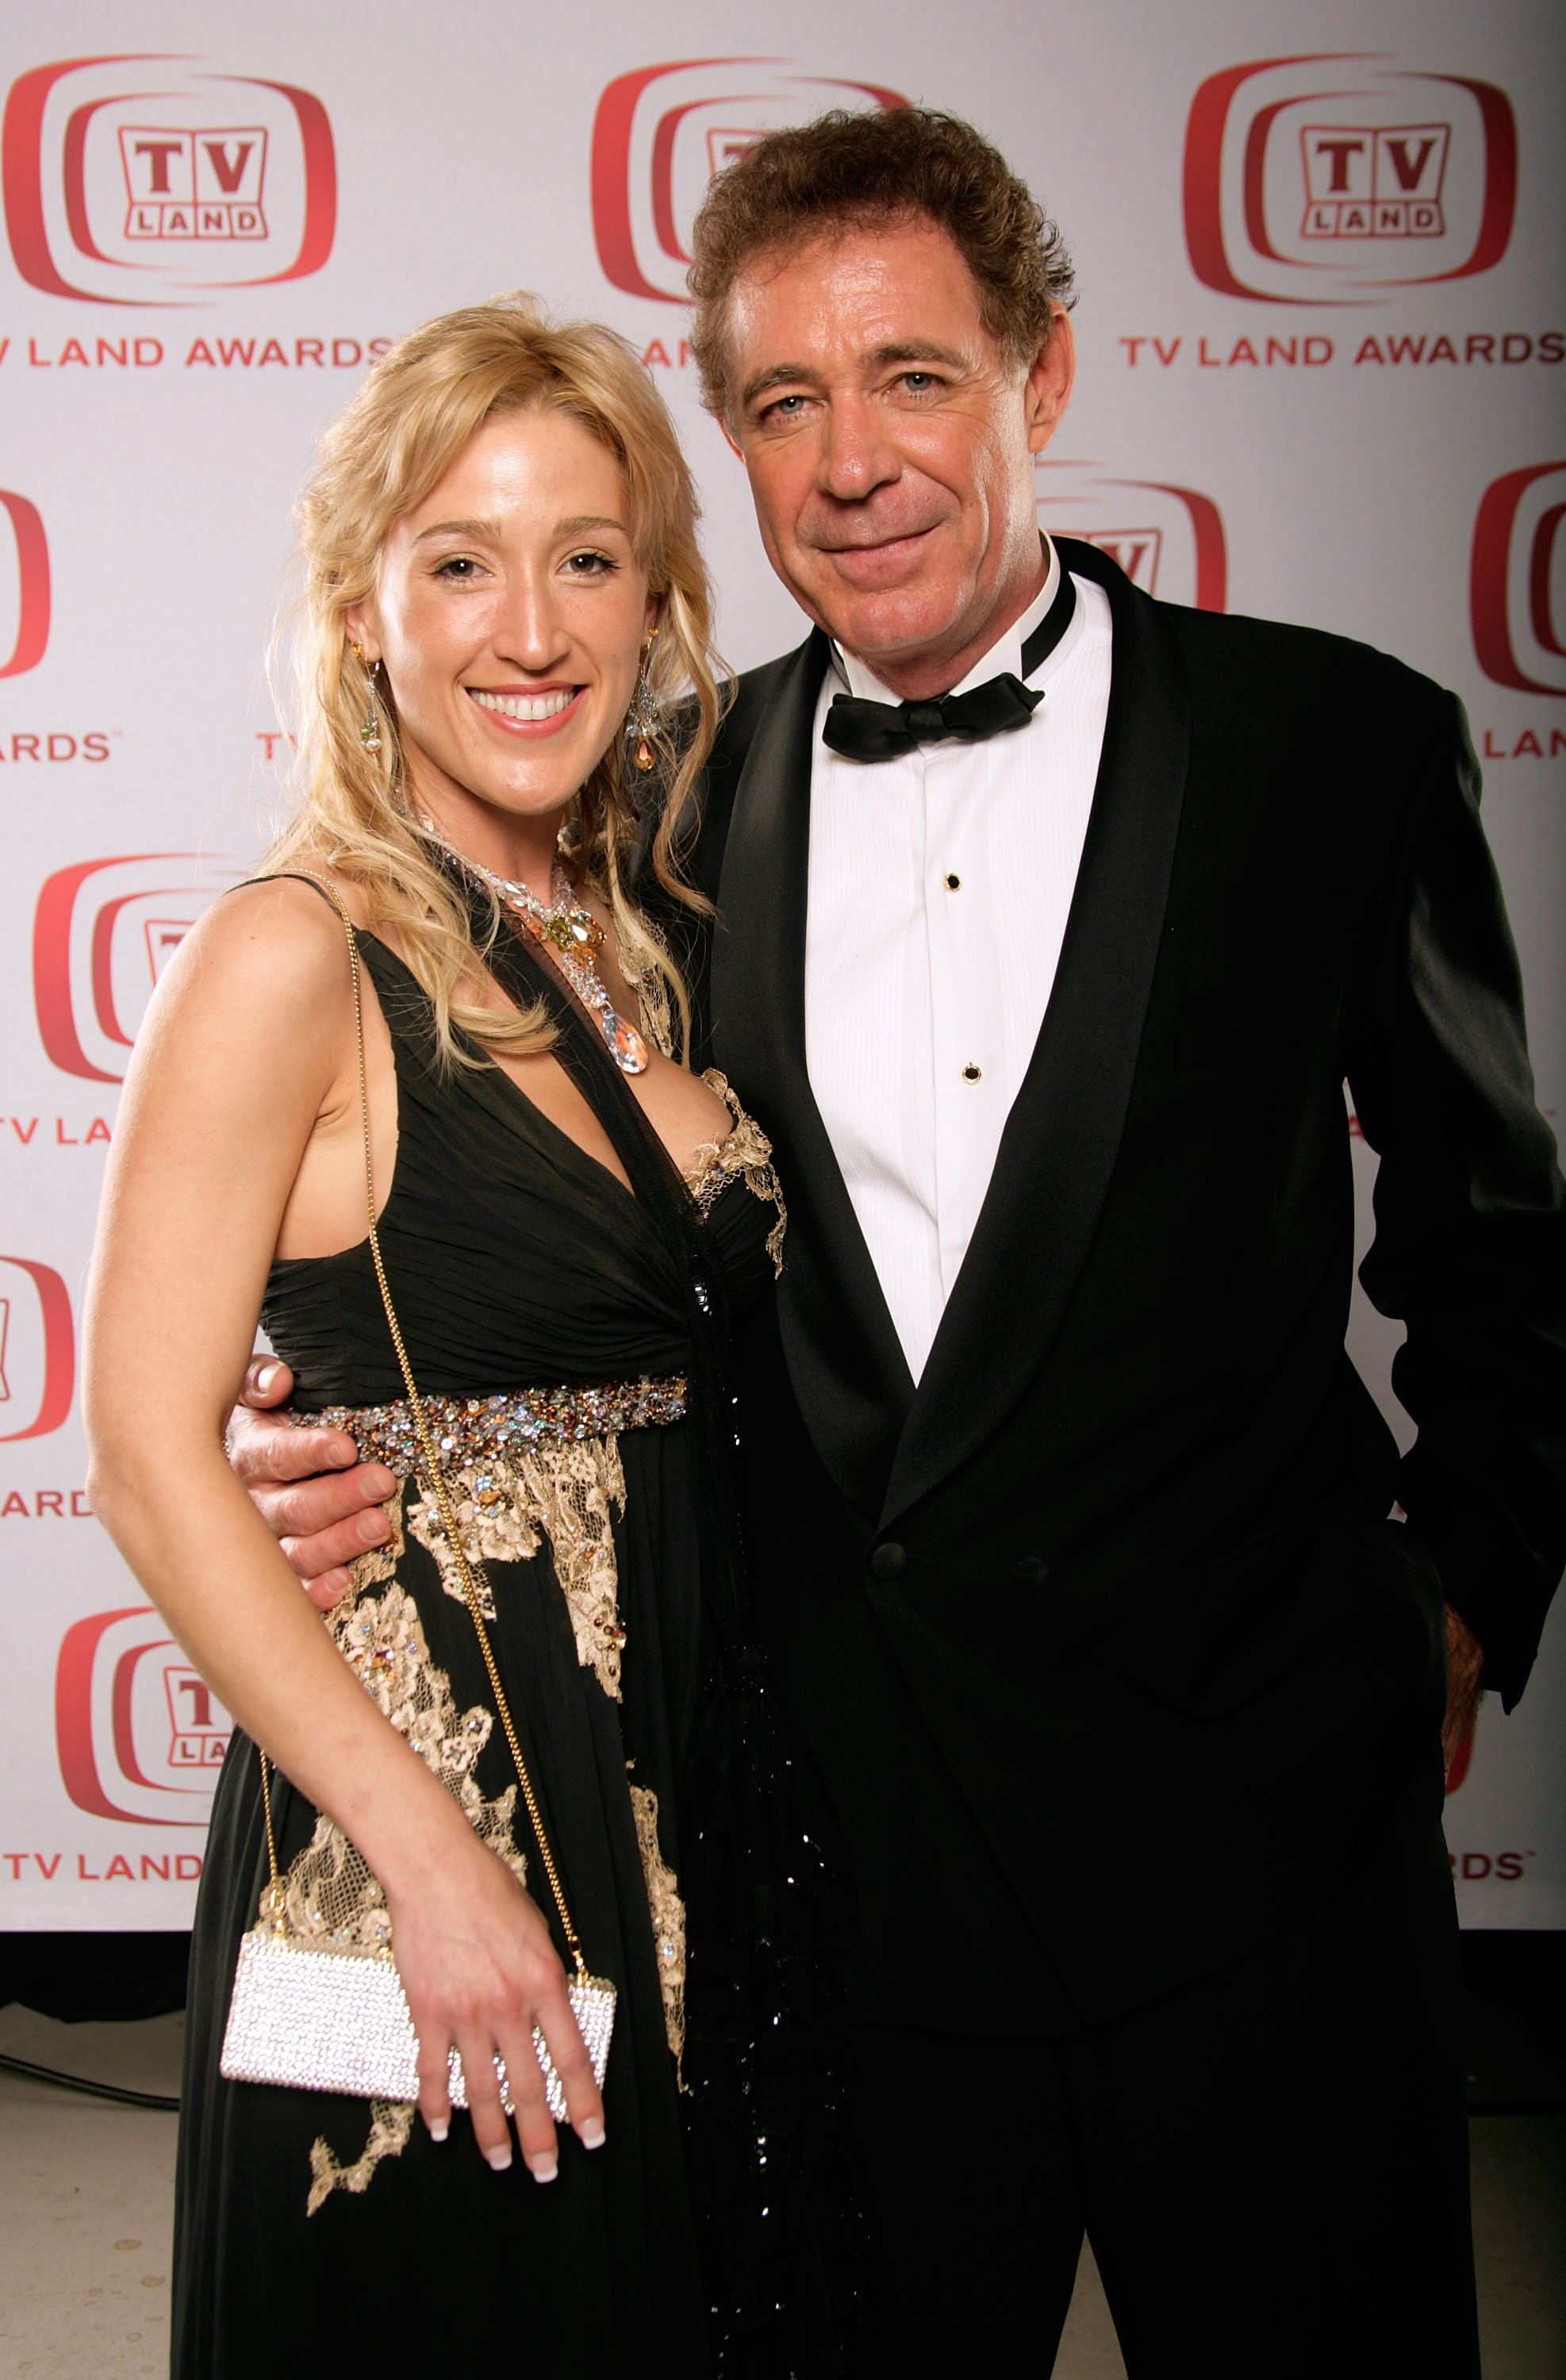 """Barry Williams and Elizabeth Kennedy pose for a portrait during the 6th annual """"TV Land Awards"""" held at Barker Hangar on June 8, 2008, in Santa Monica, California. 